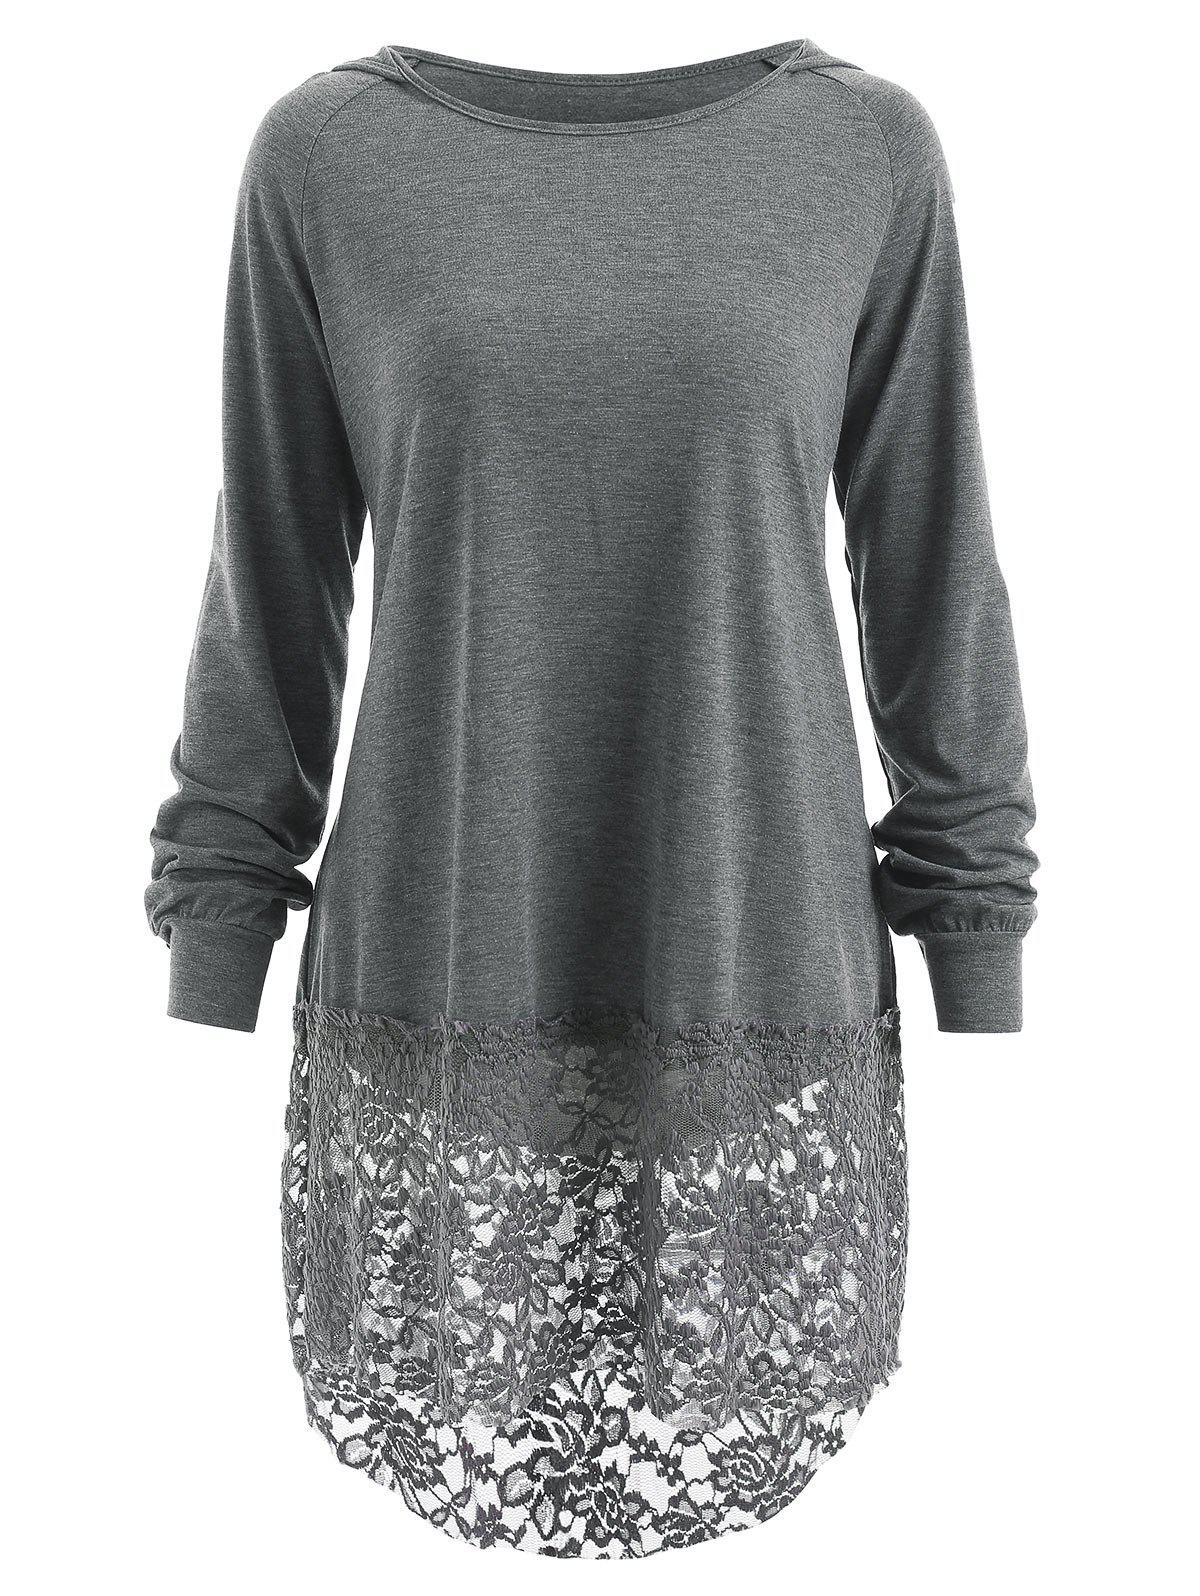 Chic Hooded Lace Panel T-shirt